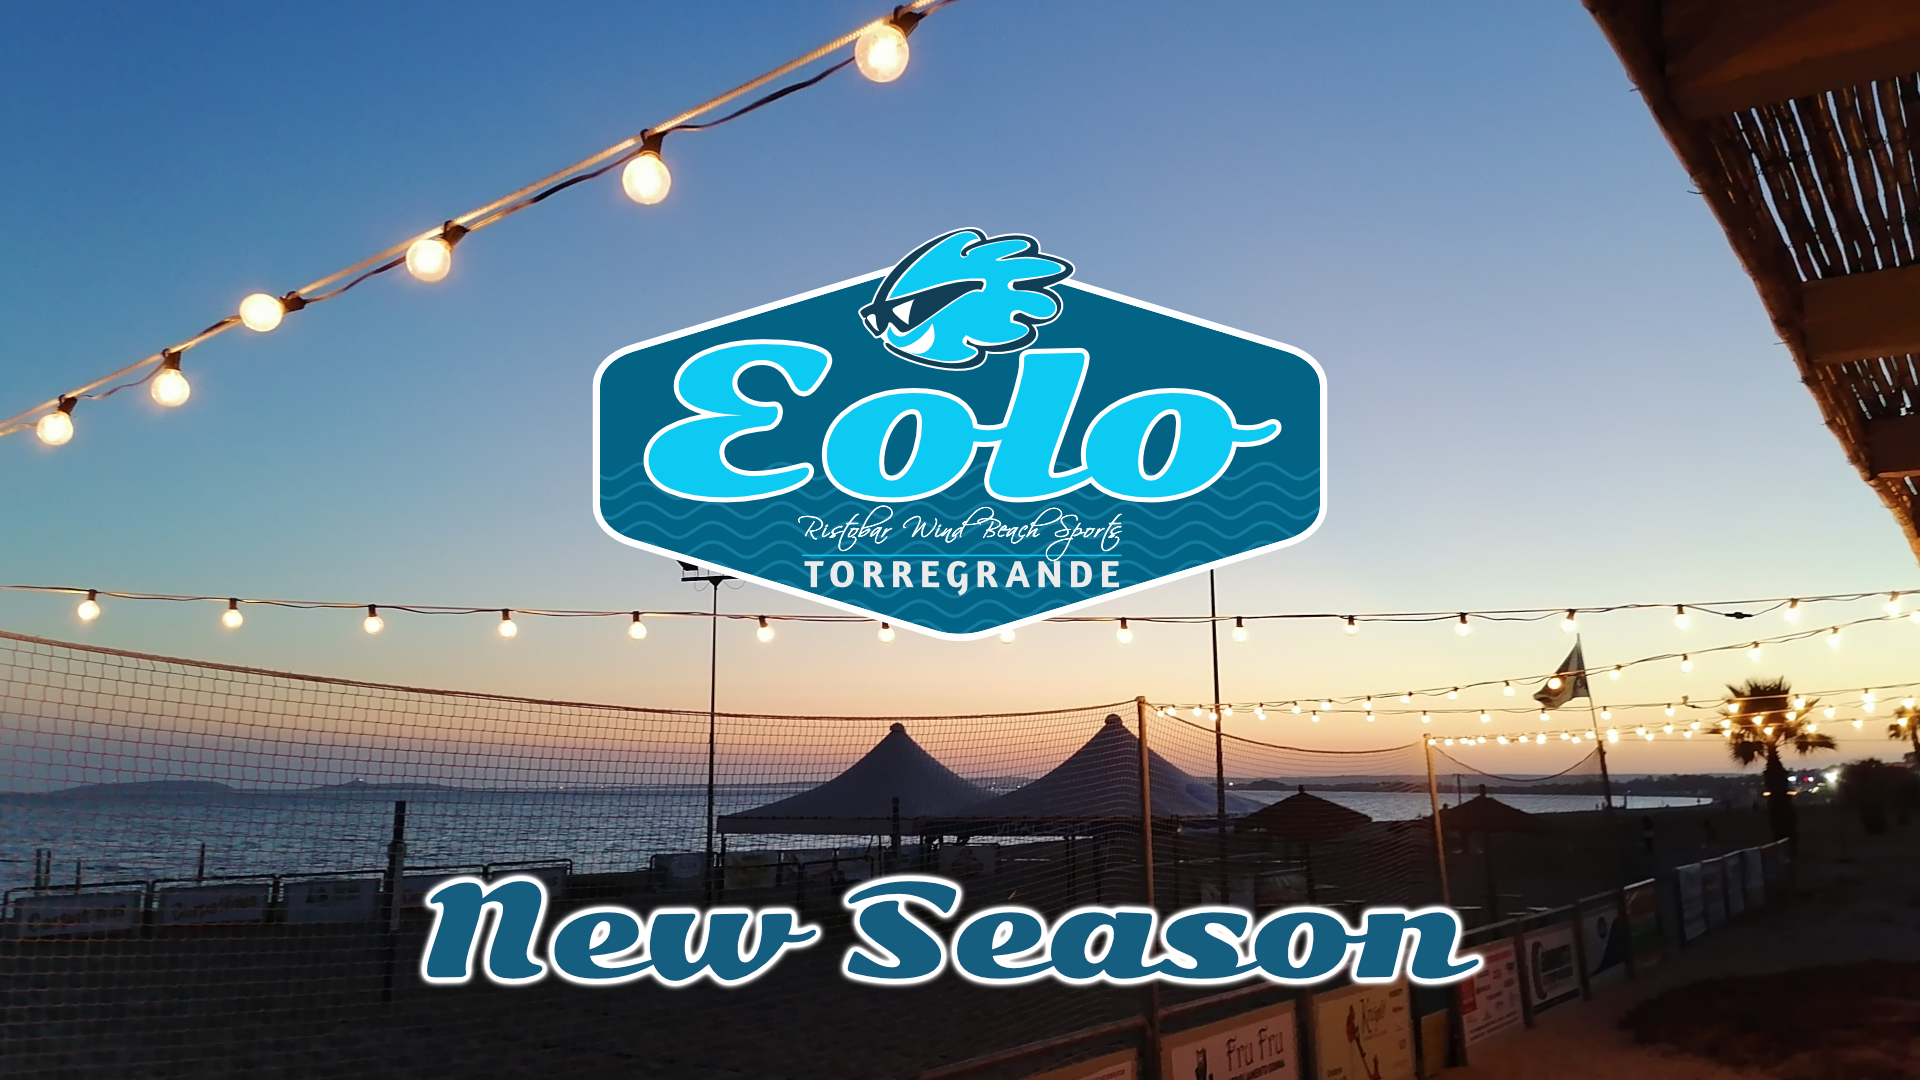 Eolo Ristobar new season